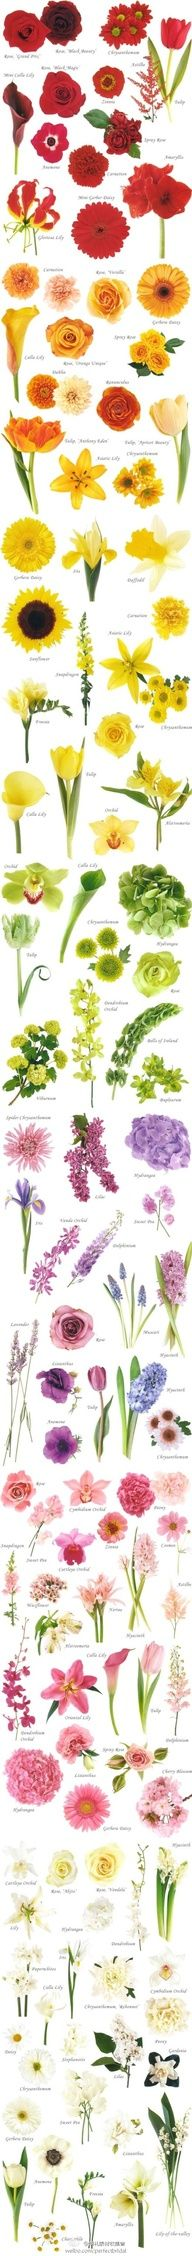 Flower Chart. Youll be glad you pinned this when it comes time